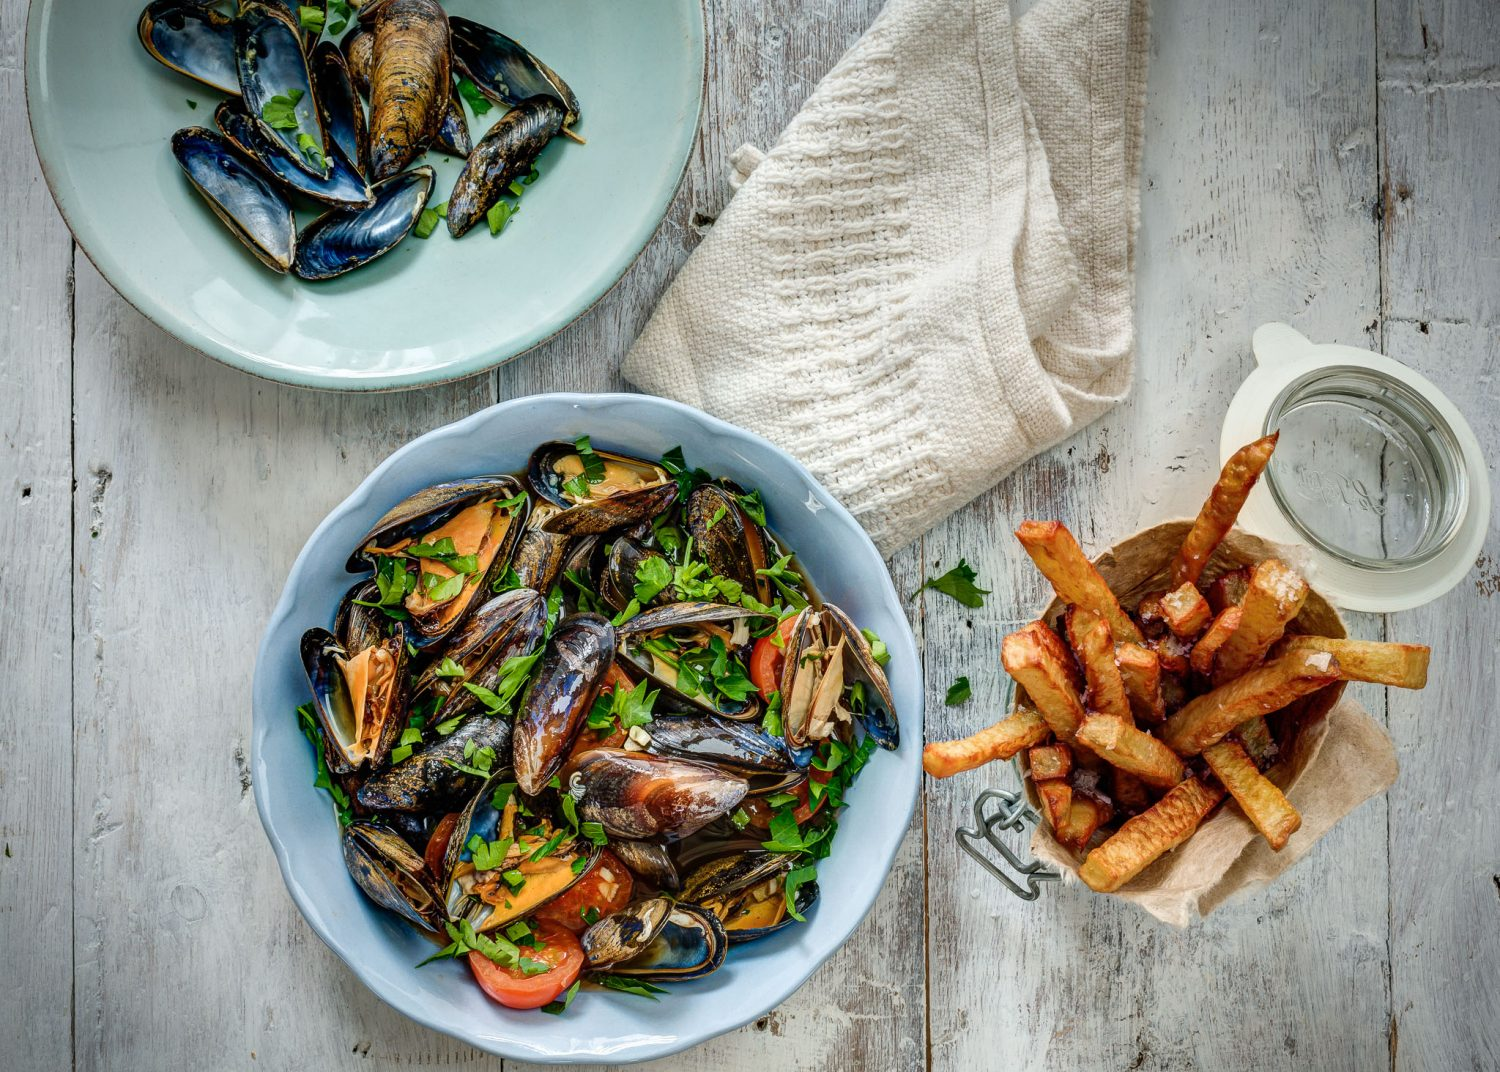 Slow Cooked Mussels and chips